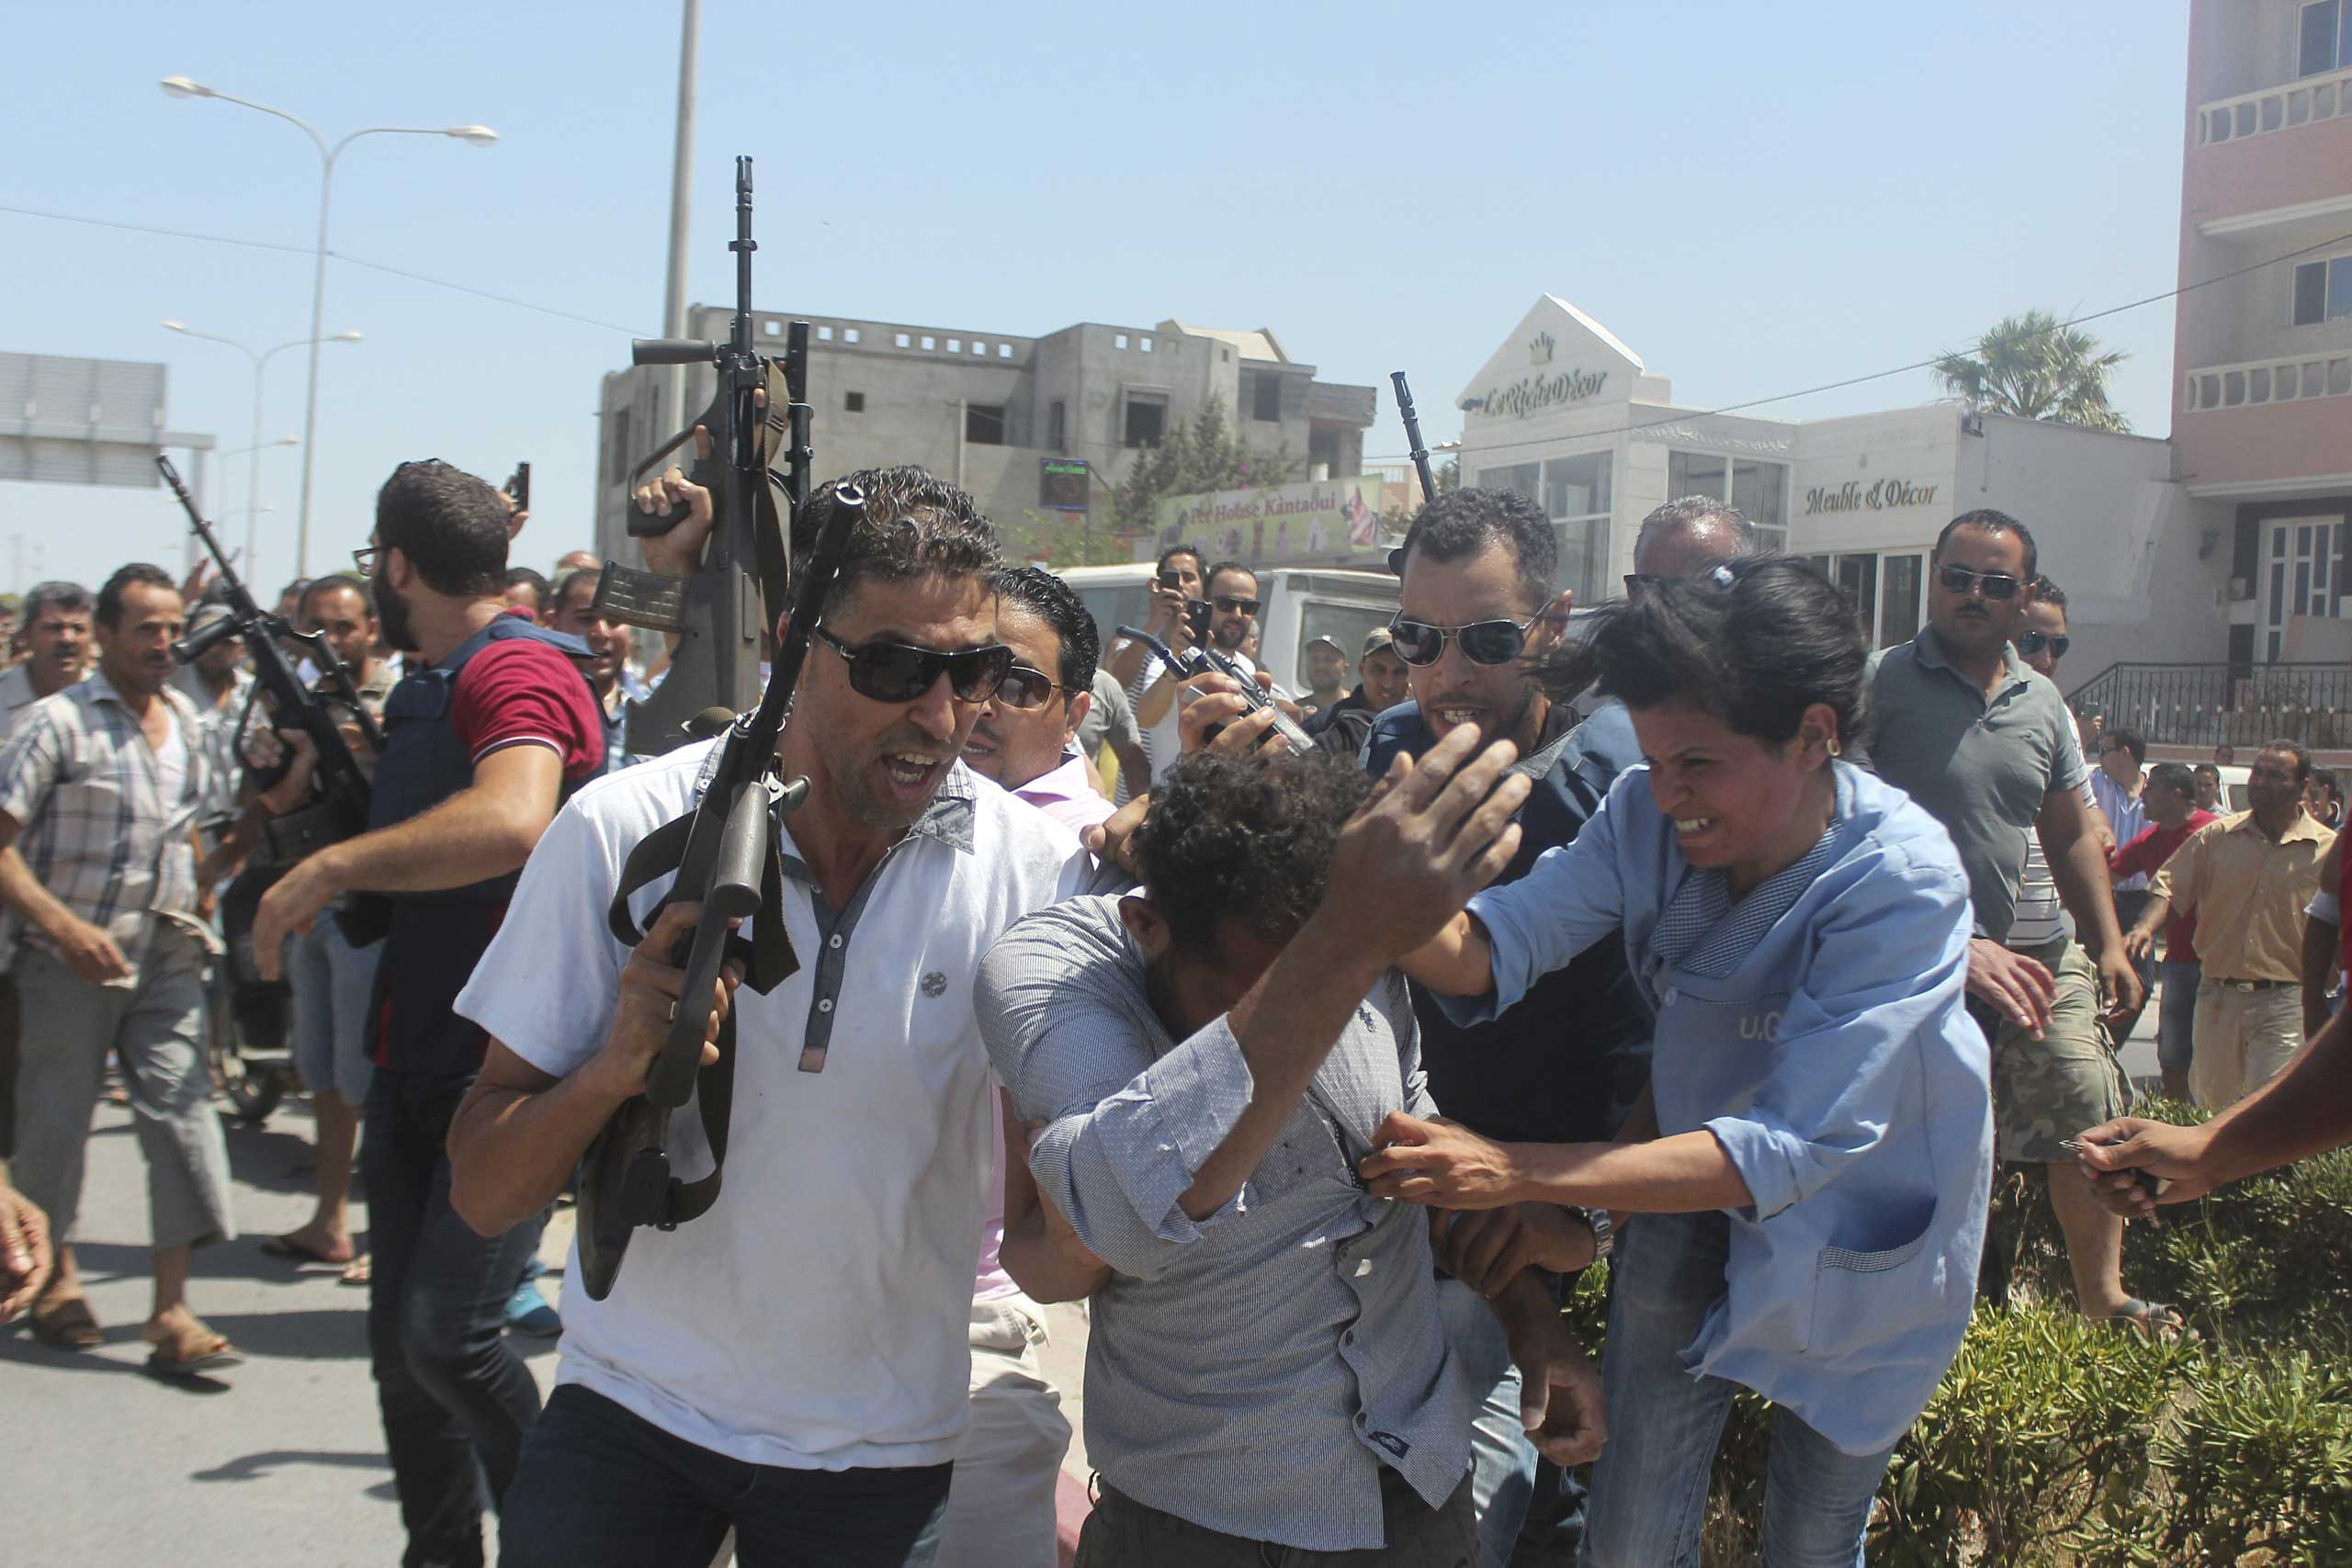 Police officers control the crowd, while surrounding a man suspected to be involved in opening fire on a beachside hotel in Sousse, Tunisia, as a woman reacts, on June 26, 2015.